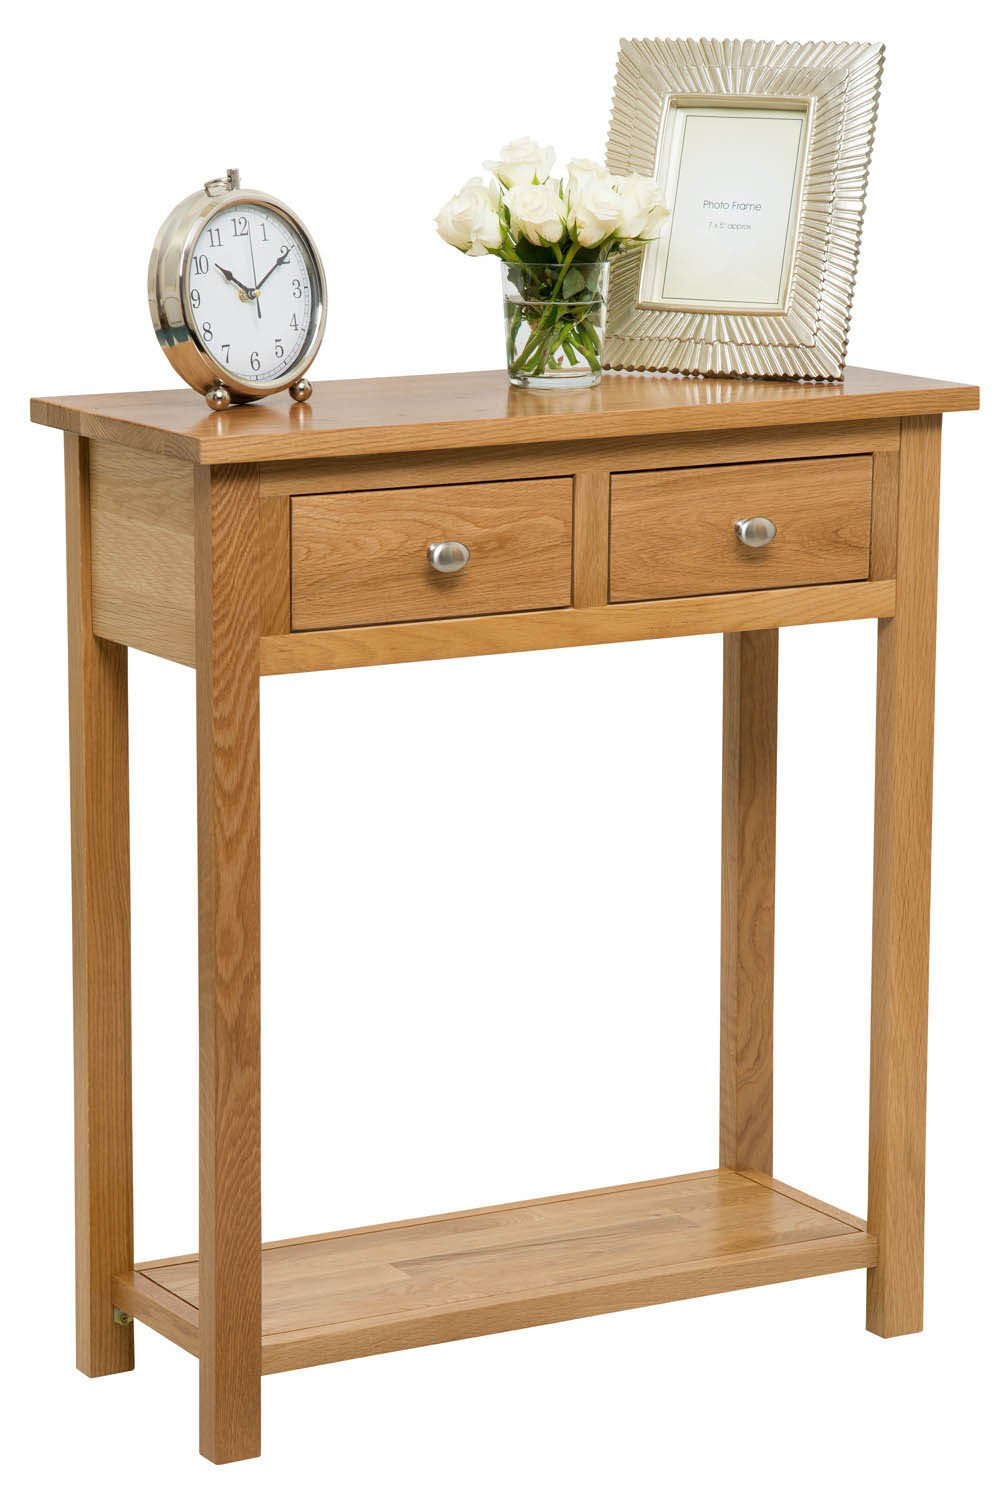 Waverly Oak 2 Drawer Large Console Table in Light Oak Finish | Solid Wooden Hall Table/Side Table/End Table/Telephone Table with 2 Drawer Hallowood Furniture